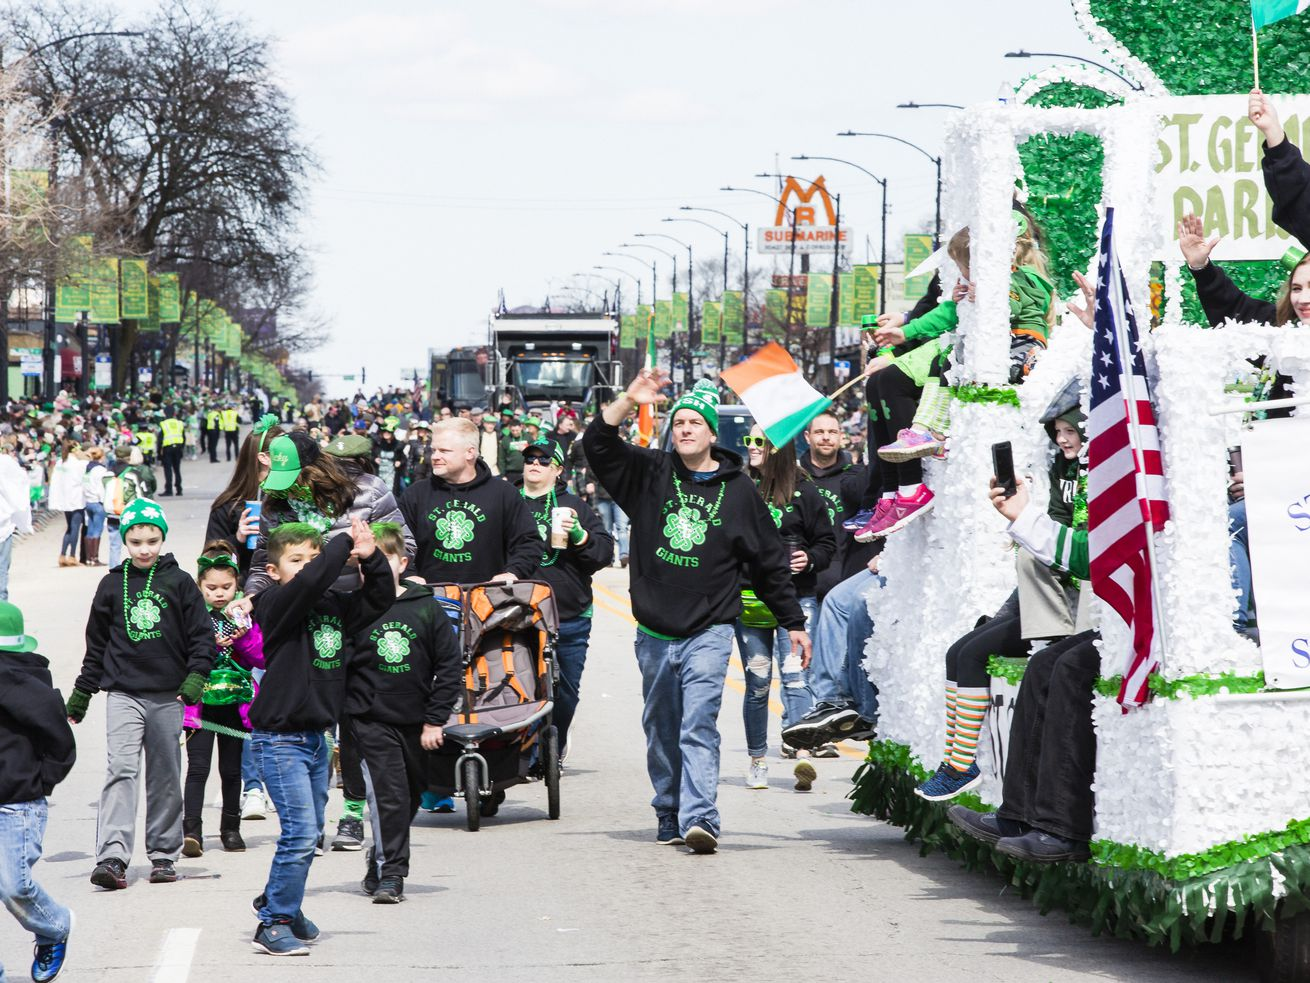 Coronavirus fears threaten downtown, South Side St. Patrick's Day parades